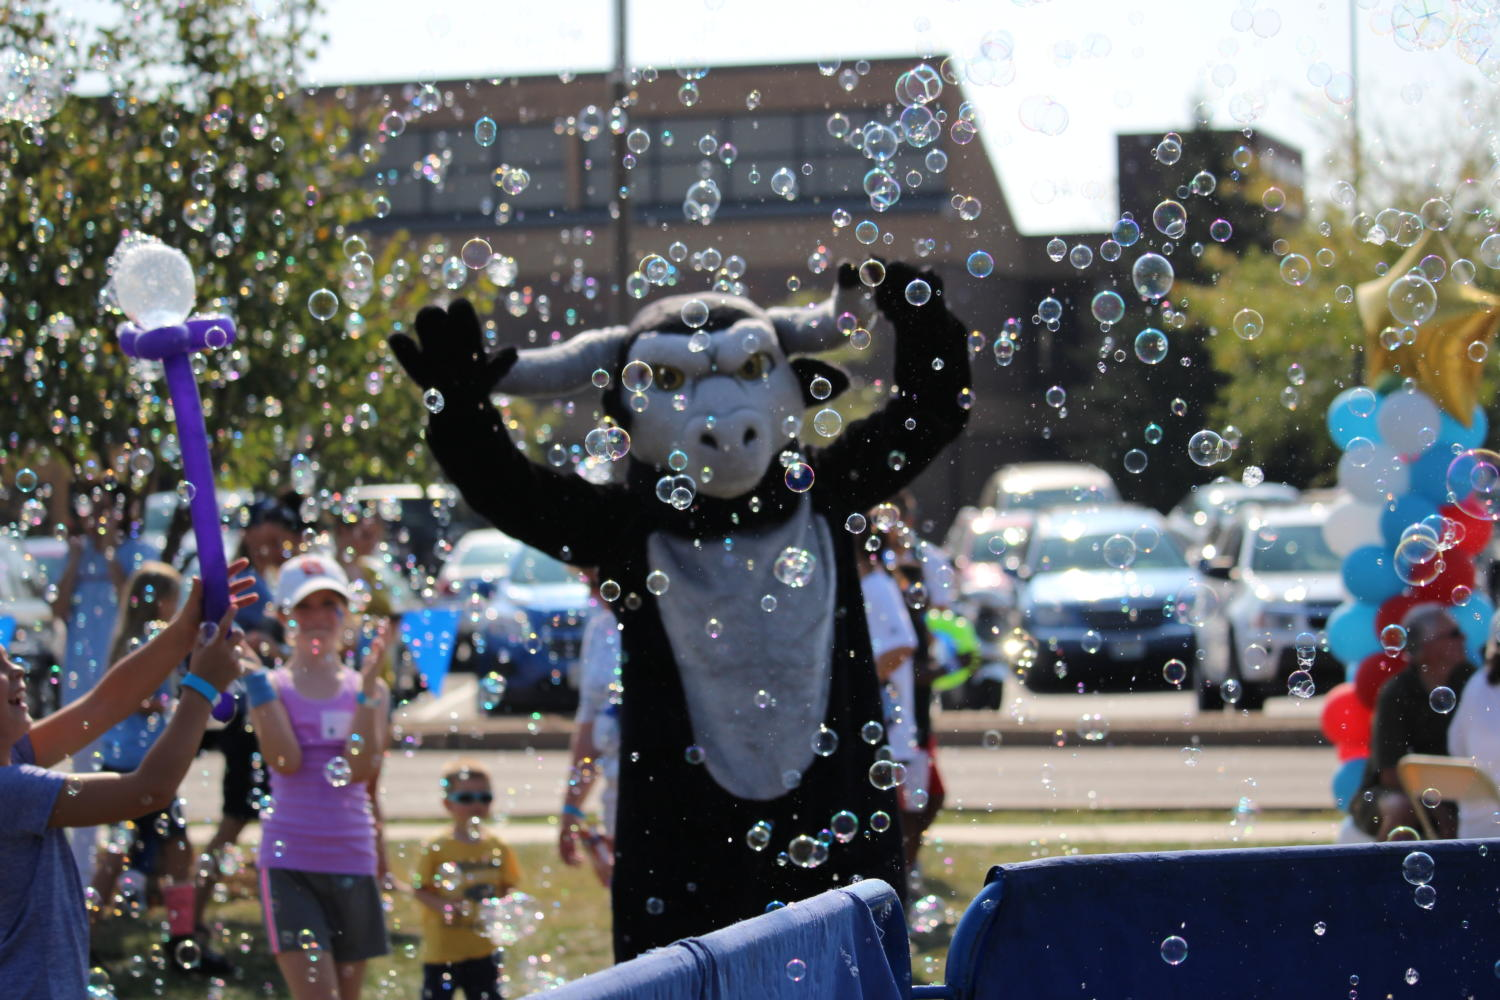 The school mascot poses in bubbles from a carnival bubble truck.